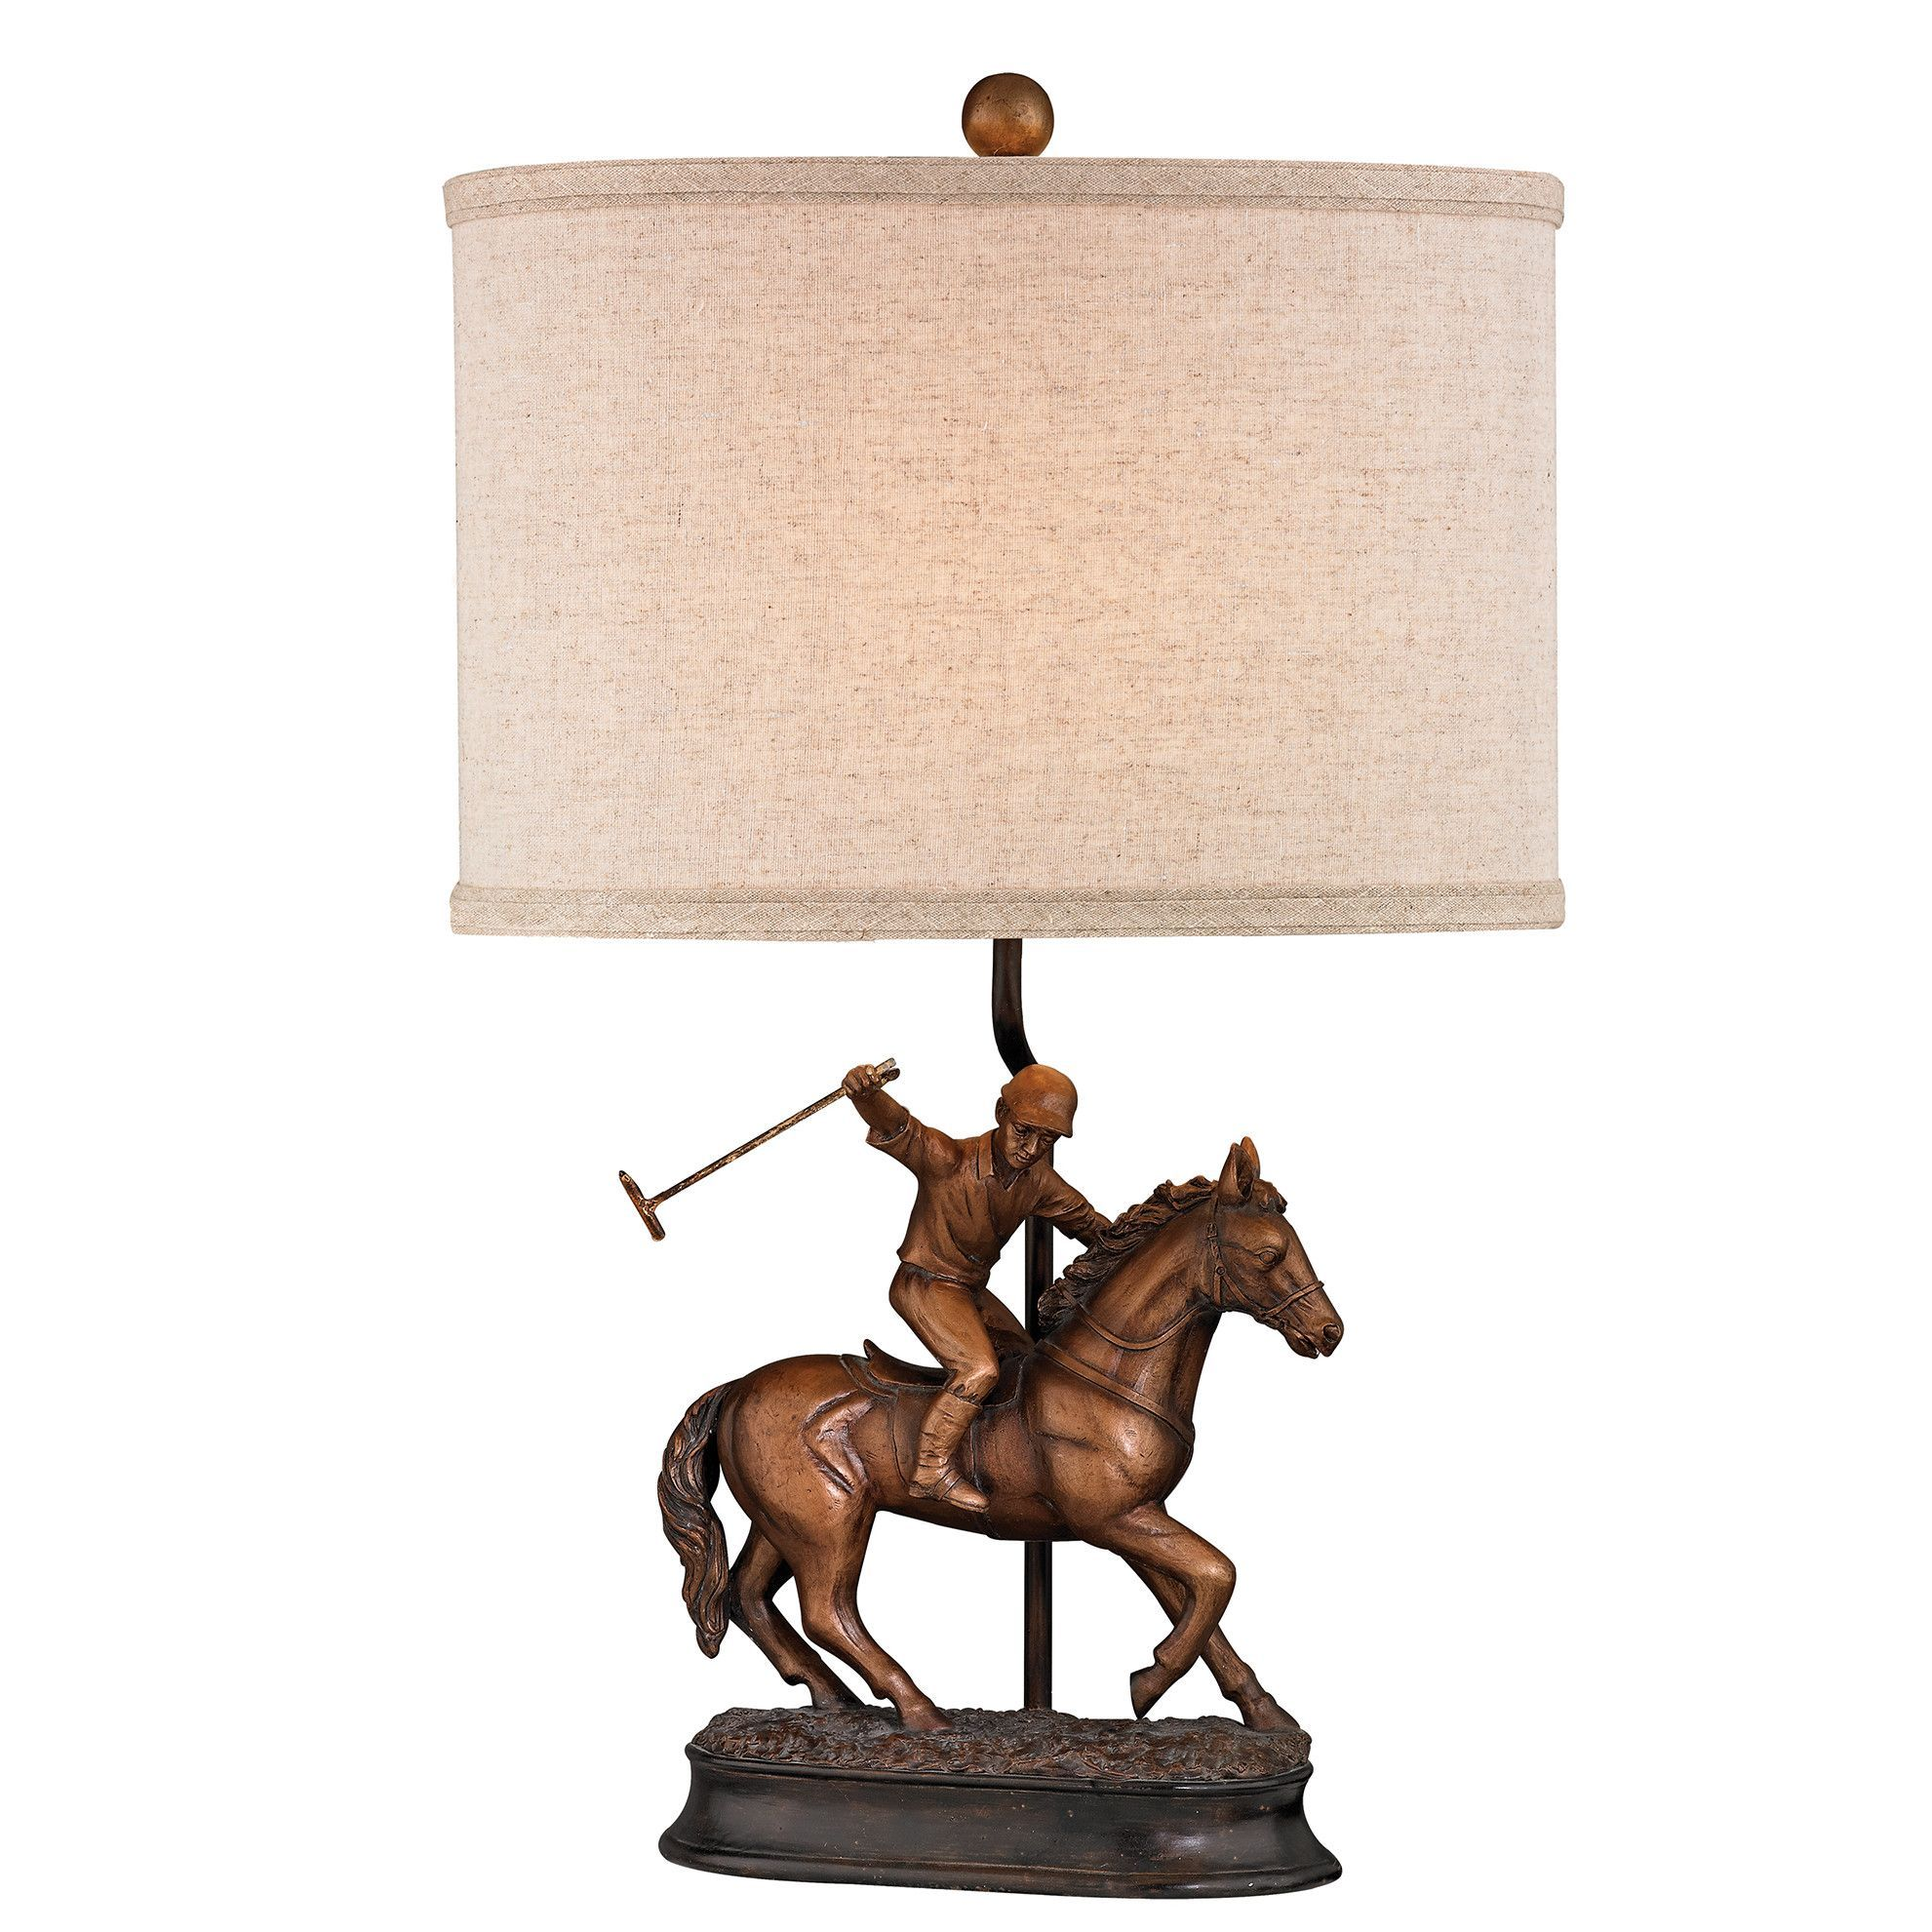 Polo player 21 h table lamp with drum shade lamp standsshades polo player 21 h table lamp with drum shade aloadofball Choice Image